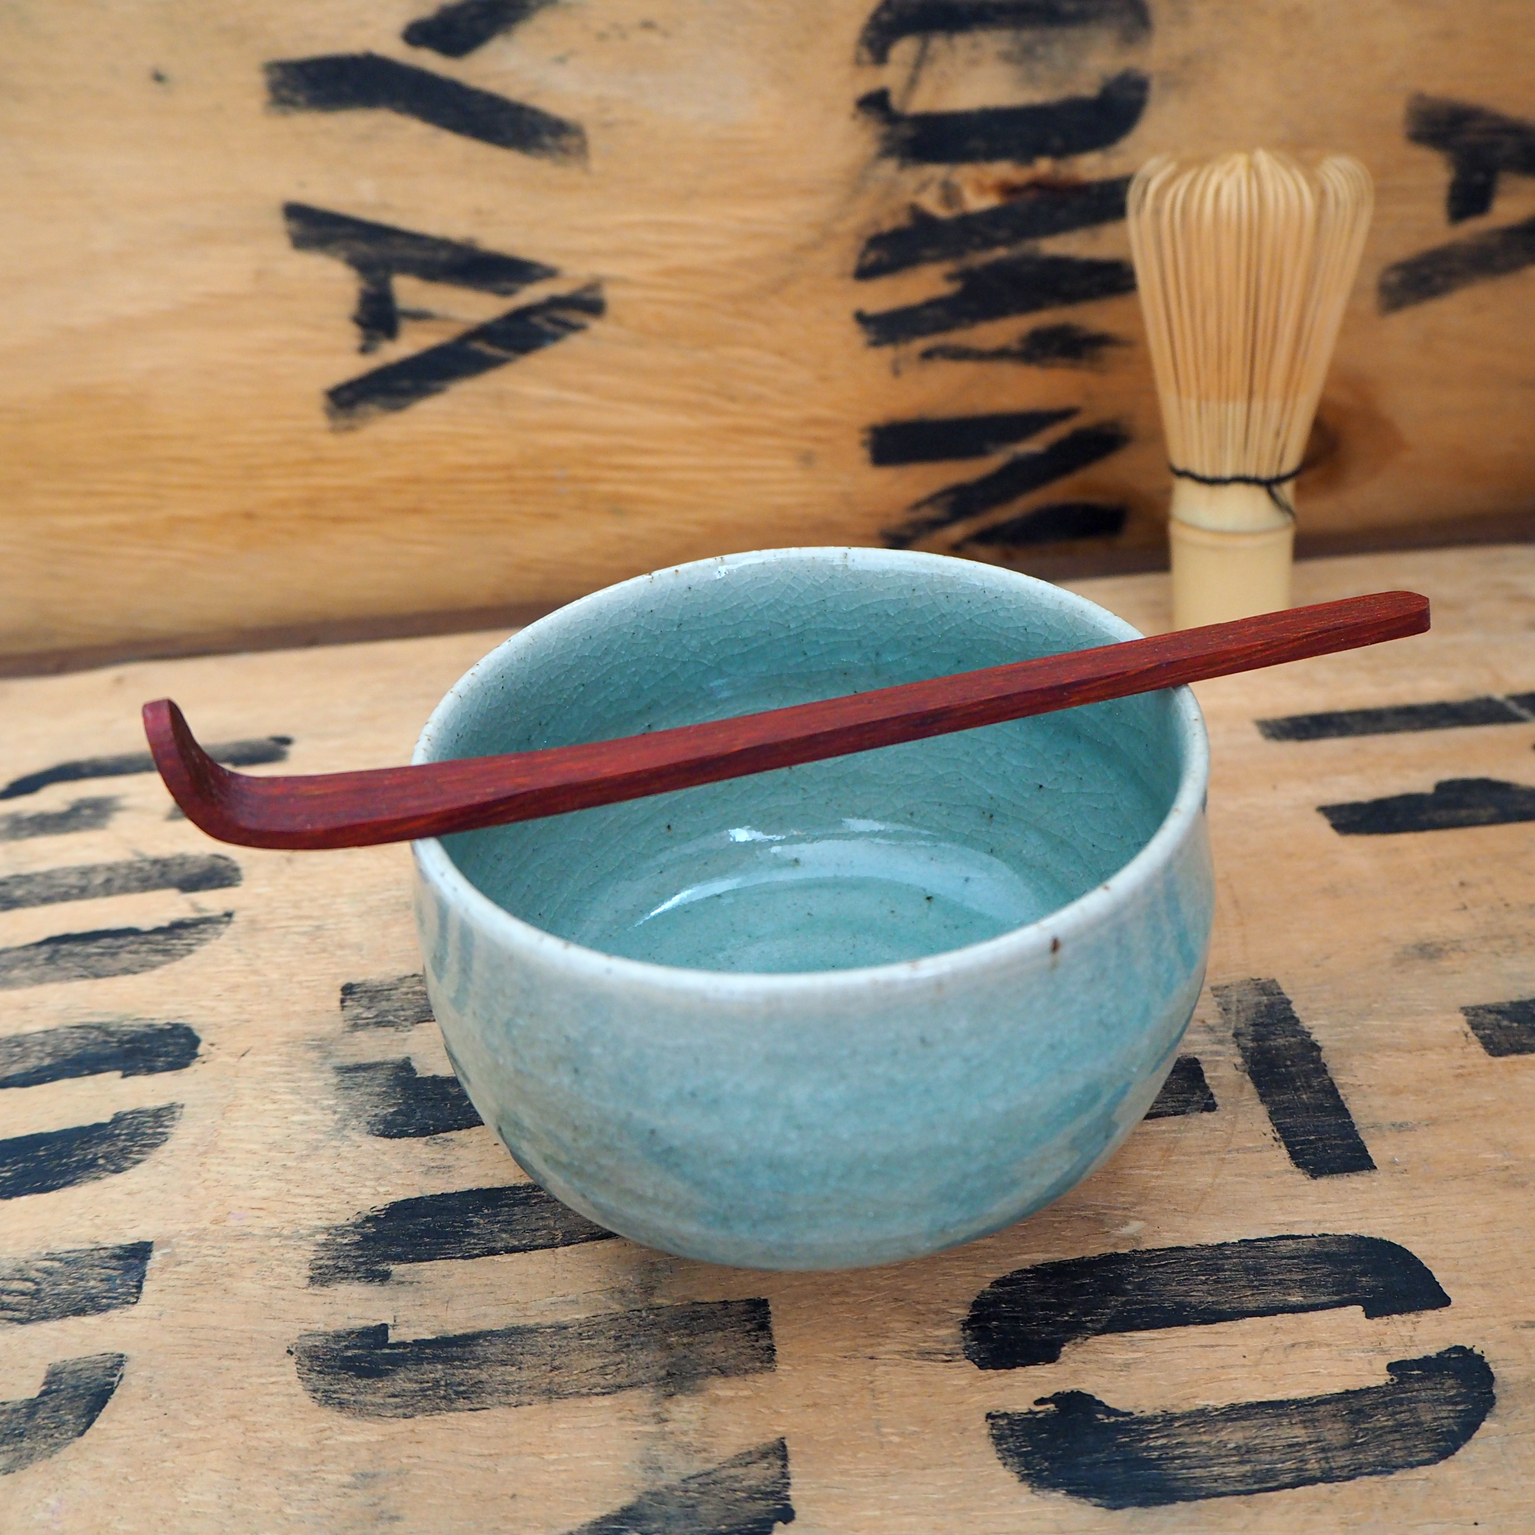 Padauk Chashaku (Matcha Scoop) by Rosie Brewer